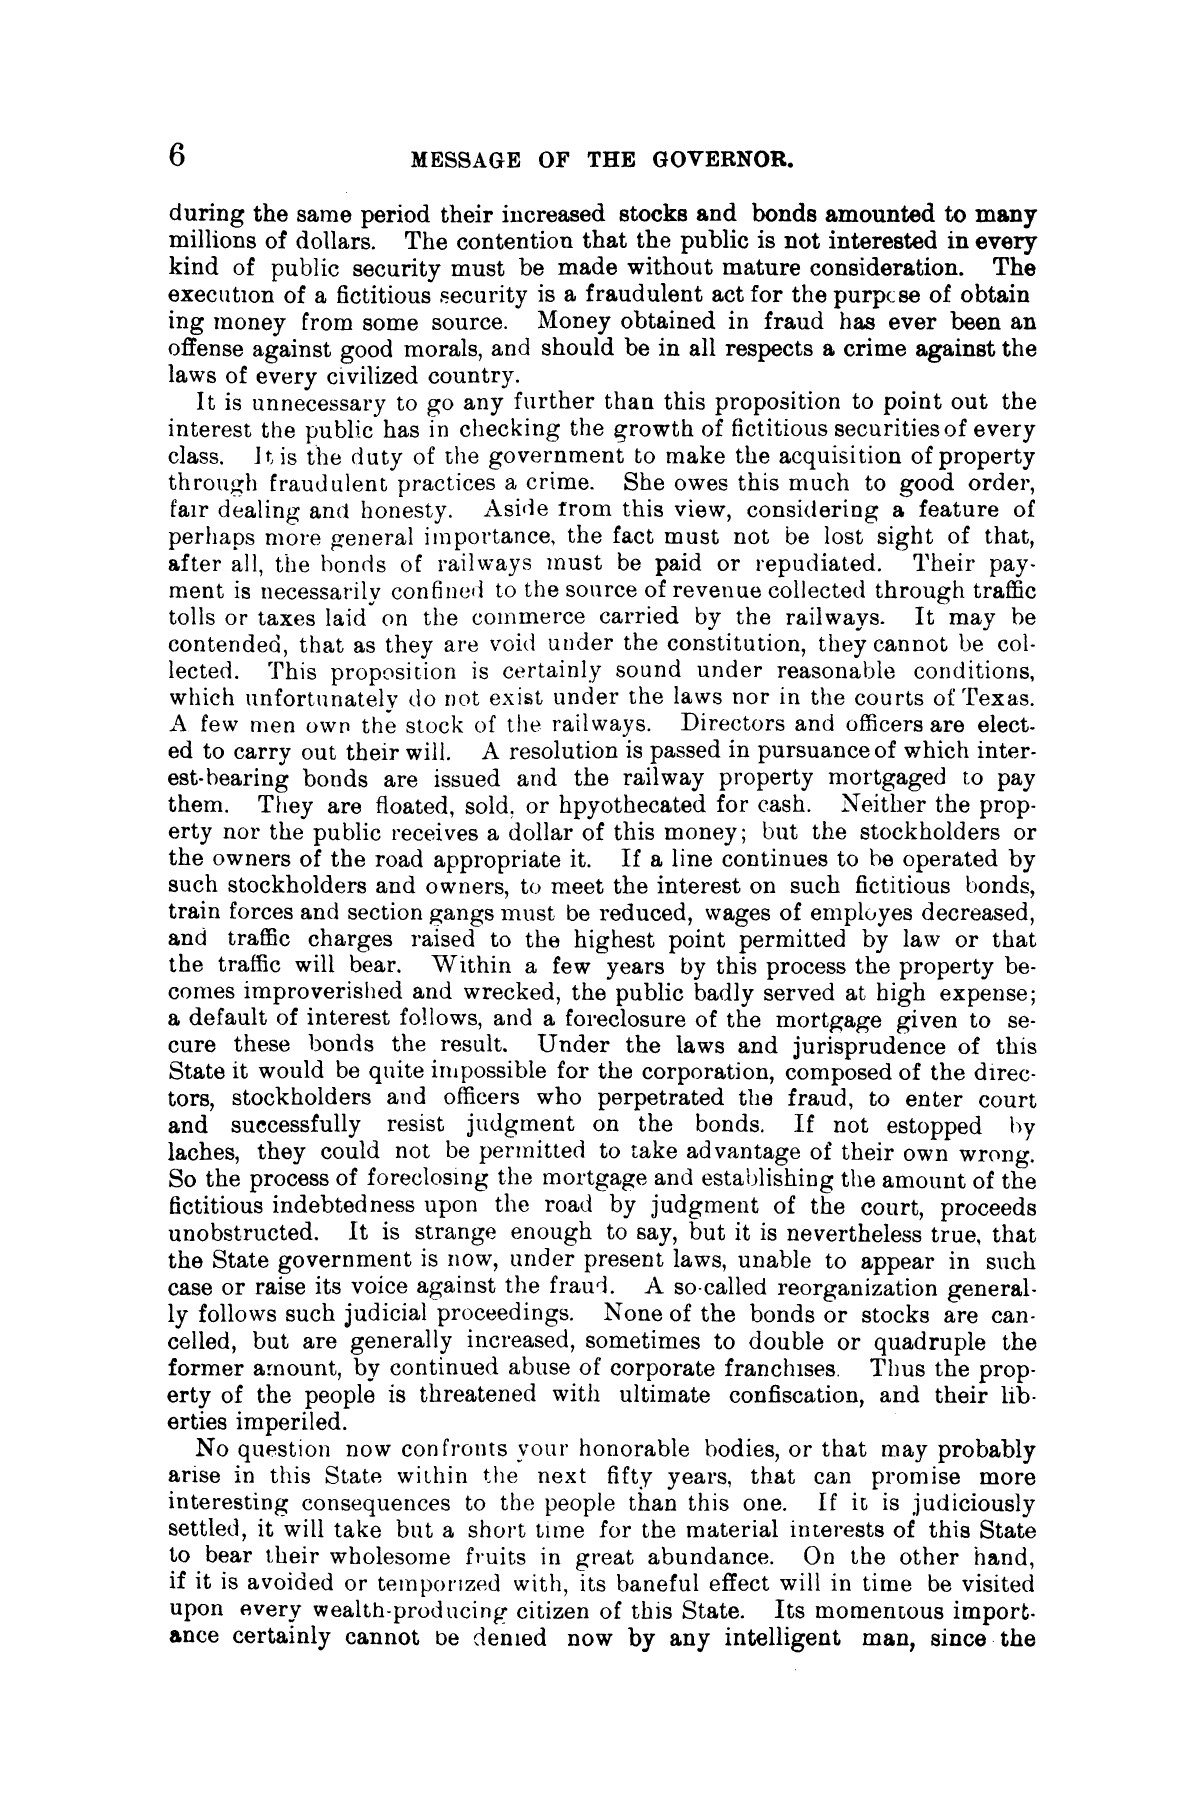 Message of Gov. J. S. Hogg to the twenty-third Legislature of Texas.                                                                                                      [Sequence #]: 6 of 28